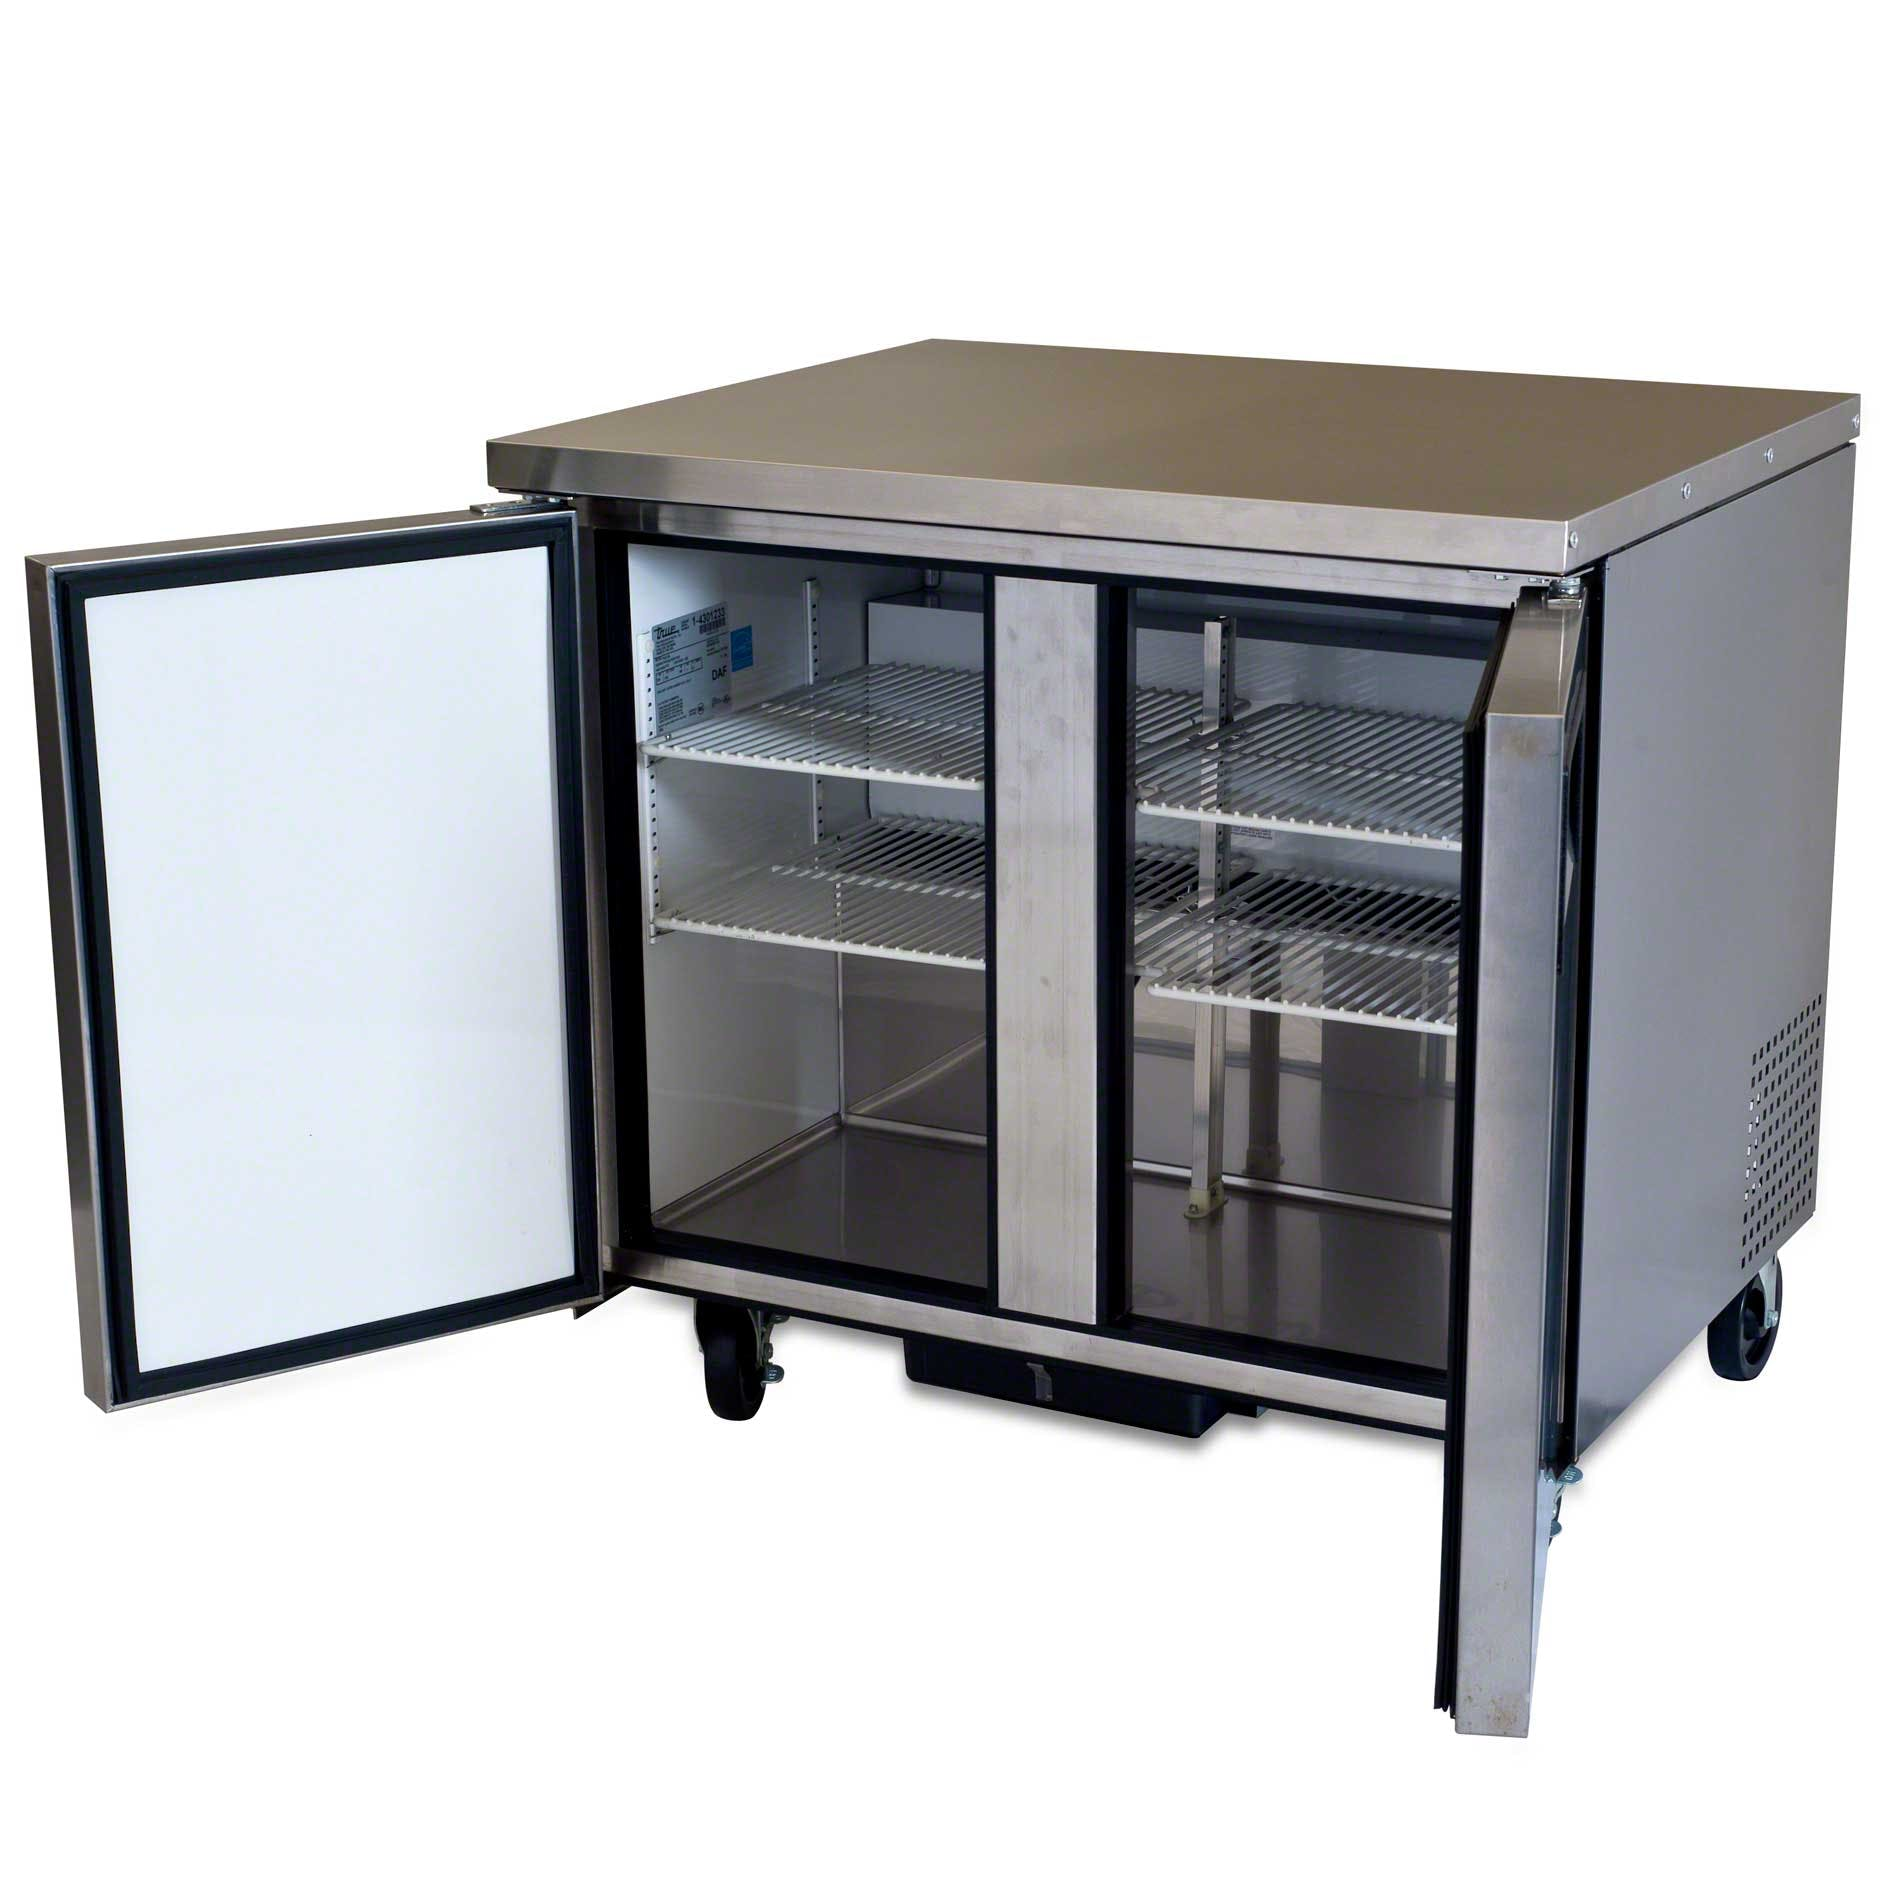 "True - TUC-36 37"" Undercounter Refrigerator Commercial refrigerator sold by Food Service Warehouse"